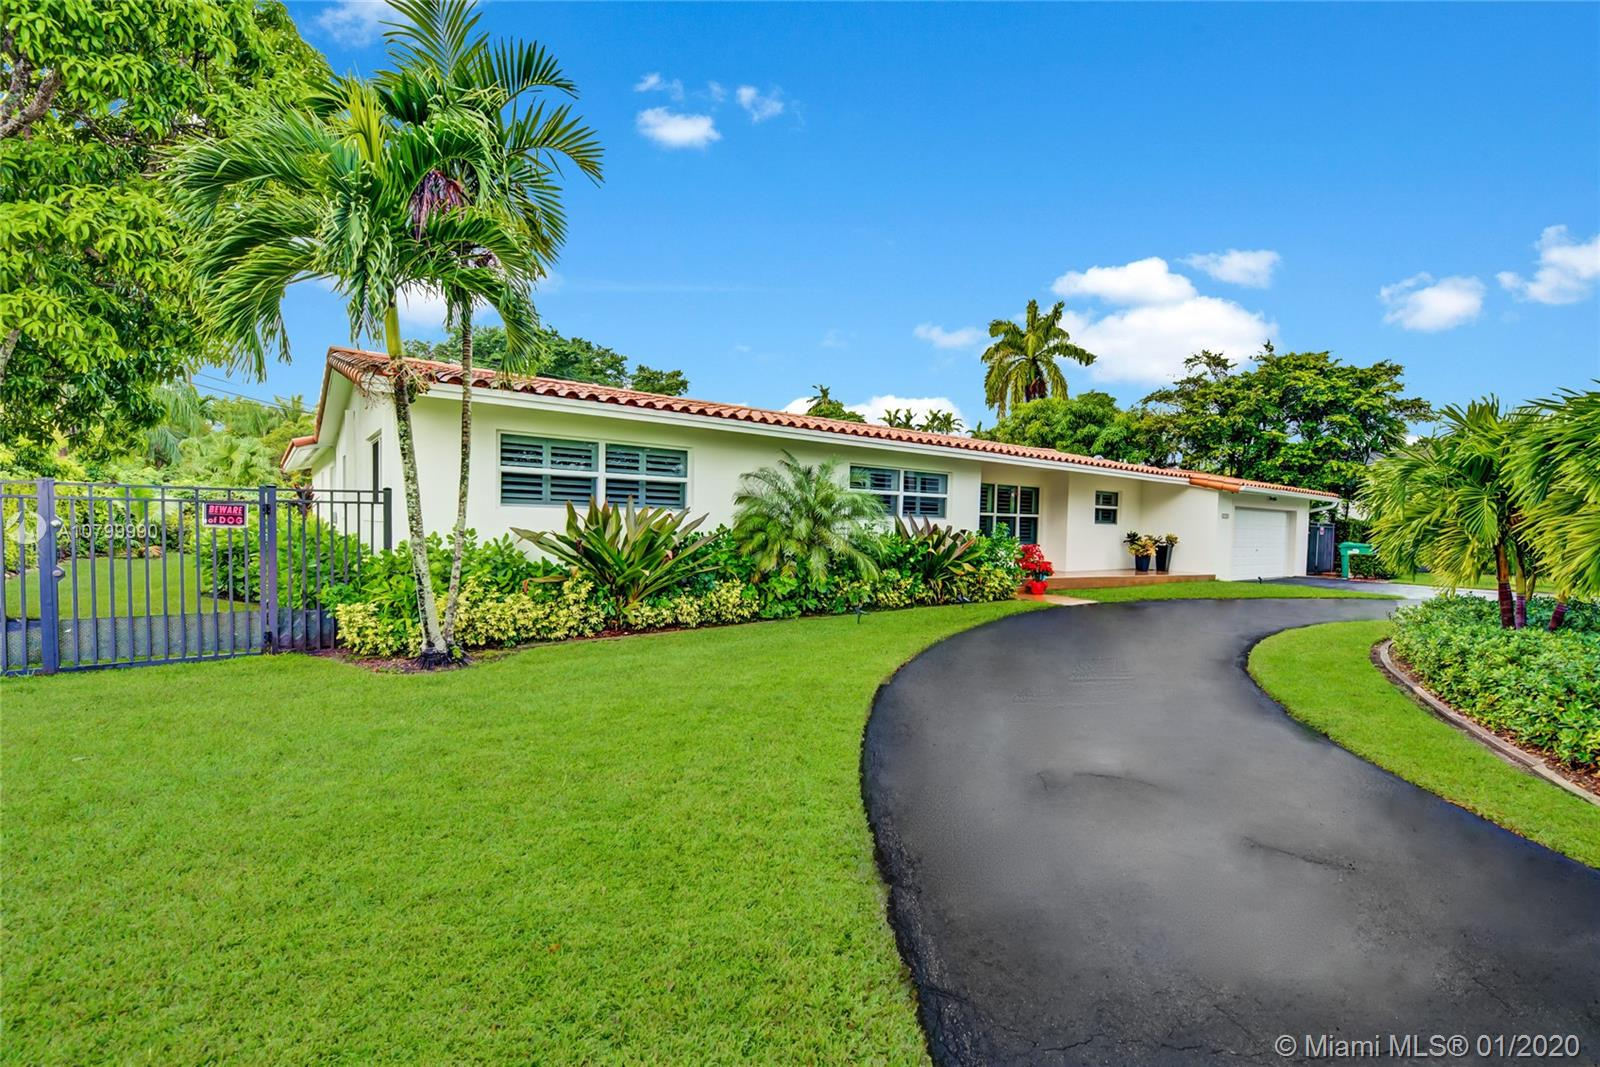 10720 SW 73rd Ave, Pinecrest, Florida 33156, 4 Bedrooms Bedrooms, ,3 BathroomsBathrooms,Residential,For Sale,10720 SW 73rd Ave,A10799990